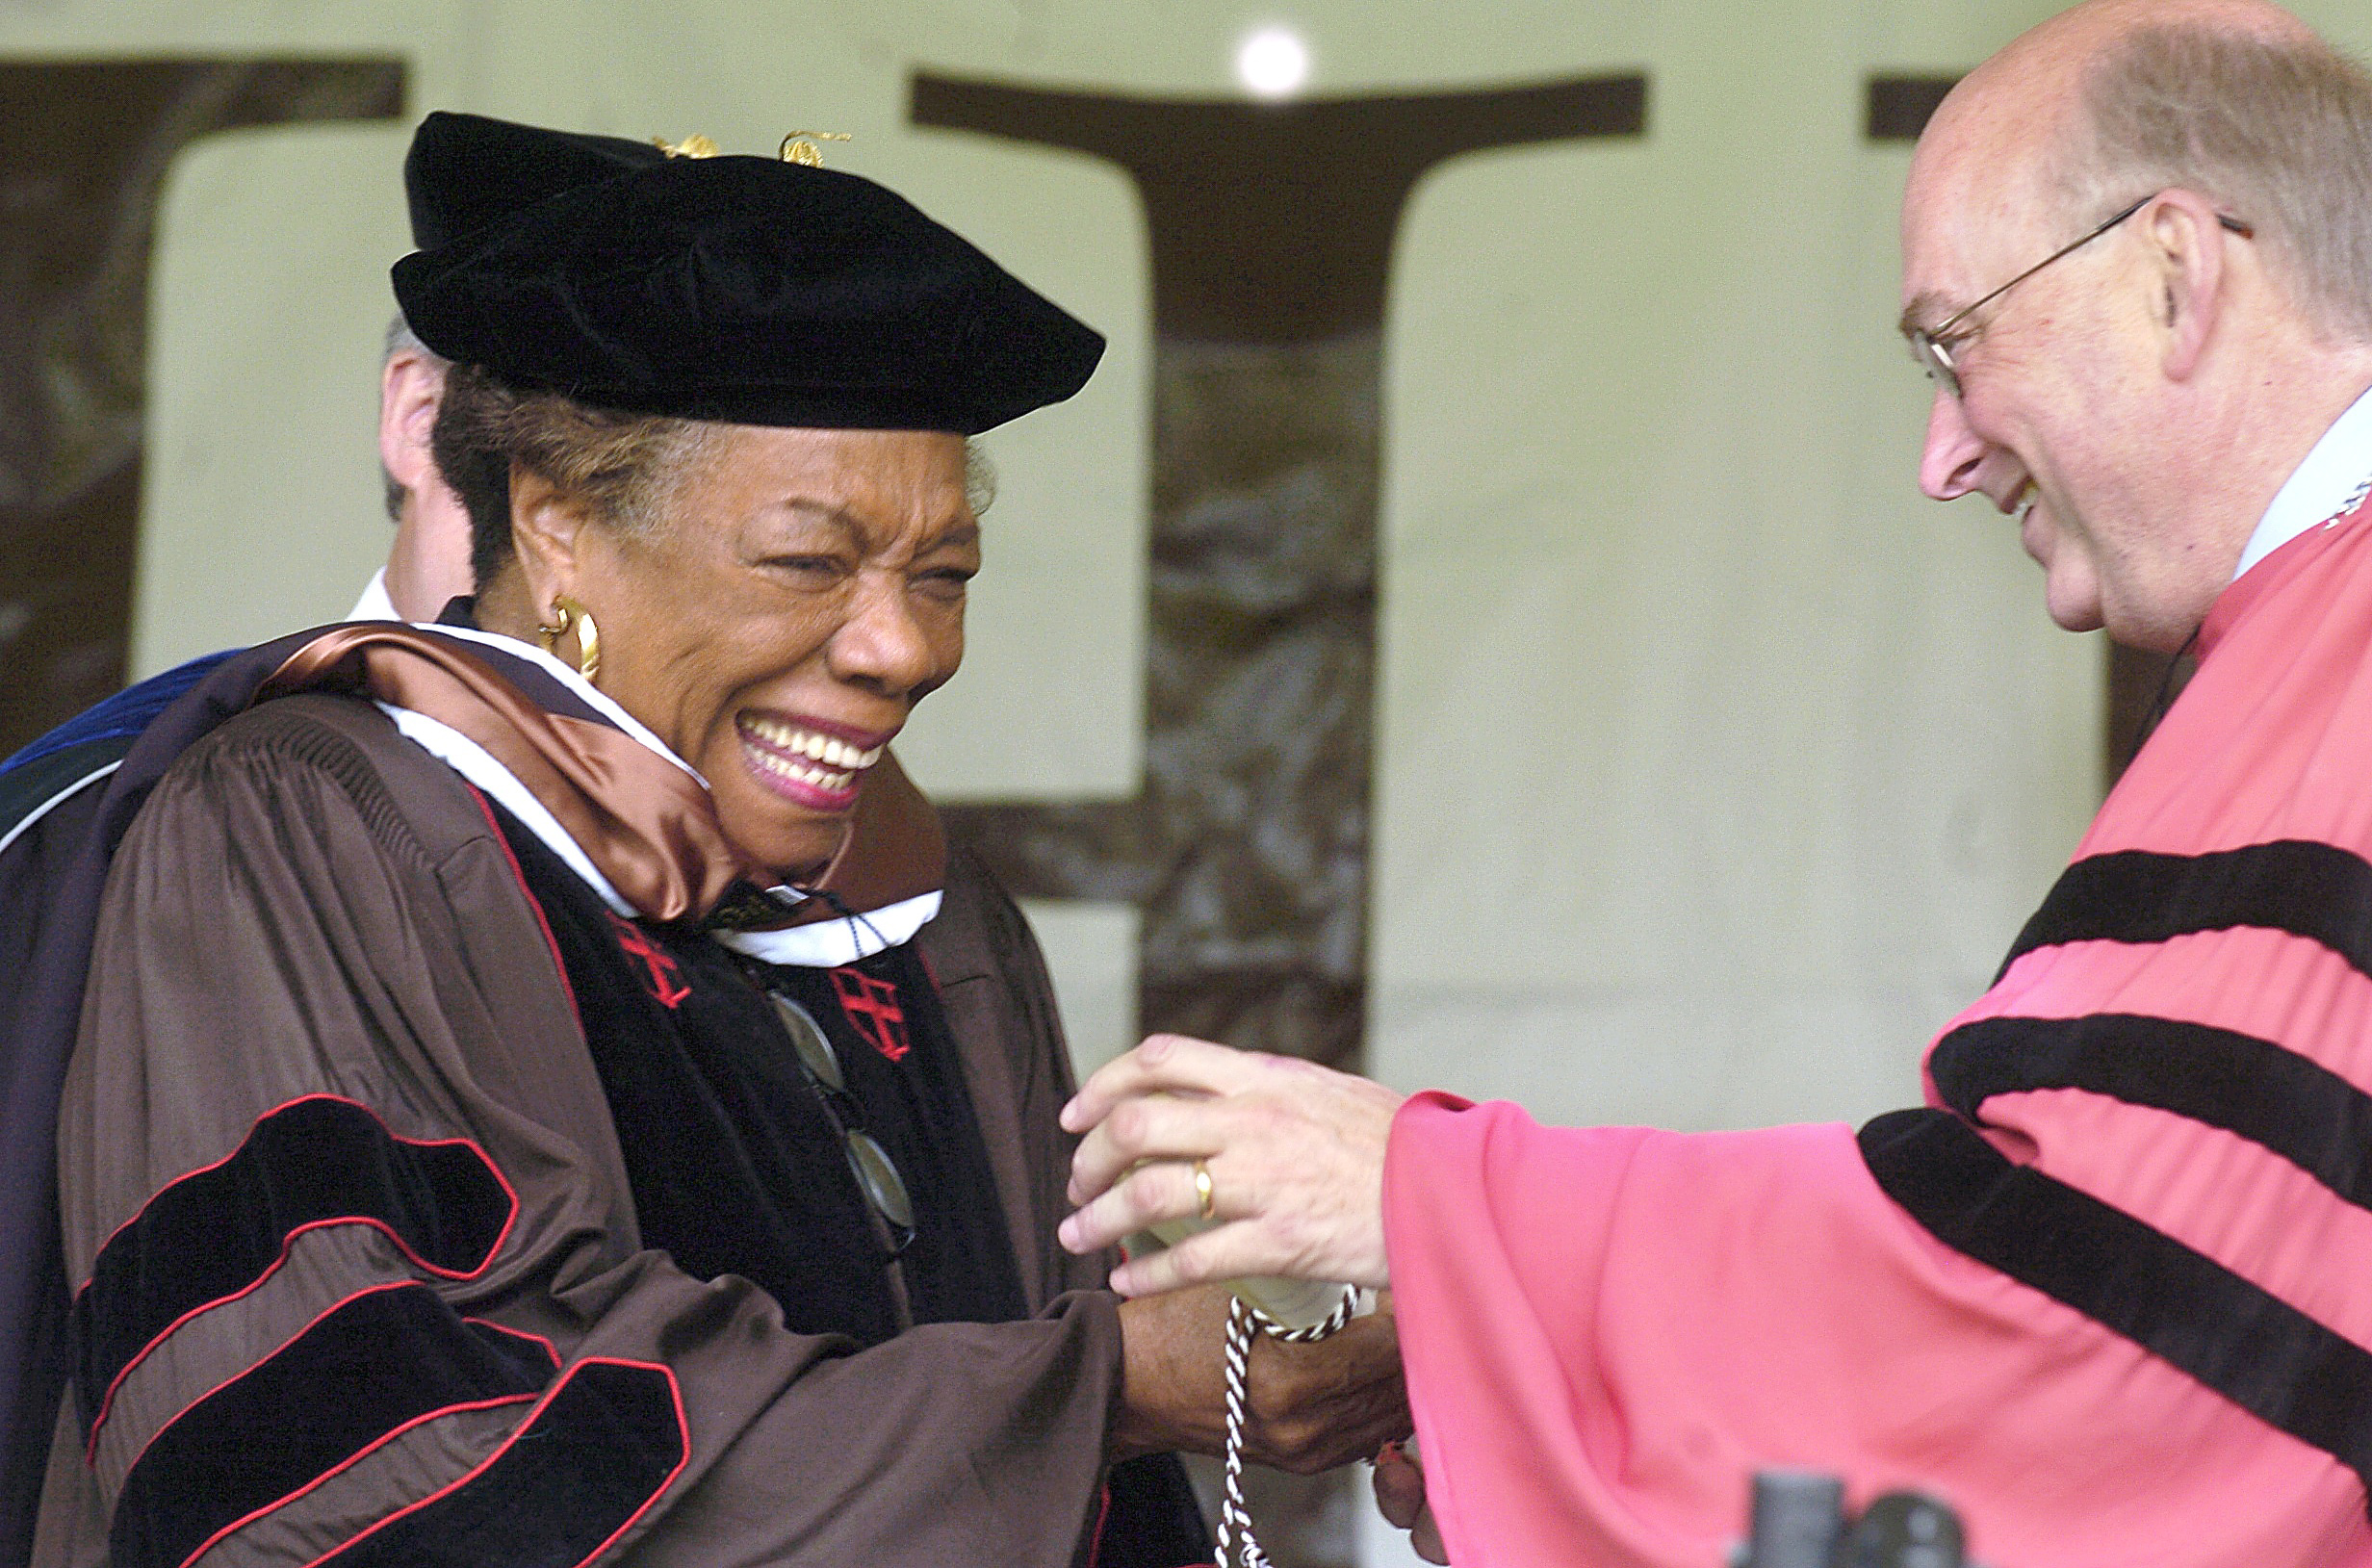 Commencement speaker Angelou smiles after receiving her honorary Doctor of Humane Letters degree, as she greets Lehigh University President Dr. Gregory C. Farrington at Murray H. Goodman Stadium on May 23, 2005. Angelou held a lifetime professorship at Wake Forest and collected honorary degrees from around 50 schools and colleges.